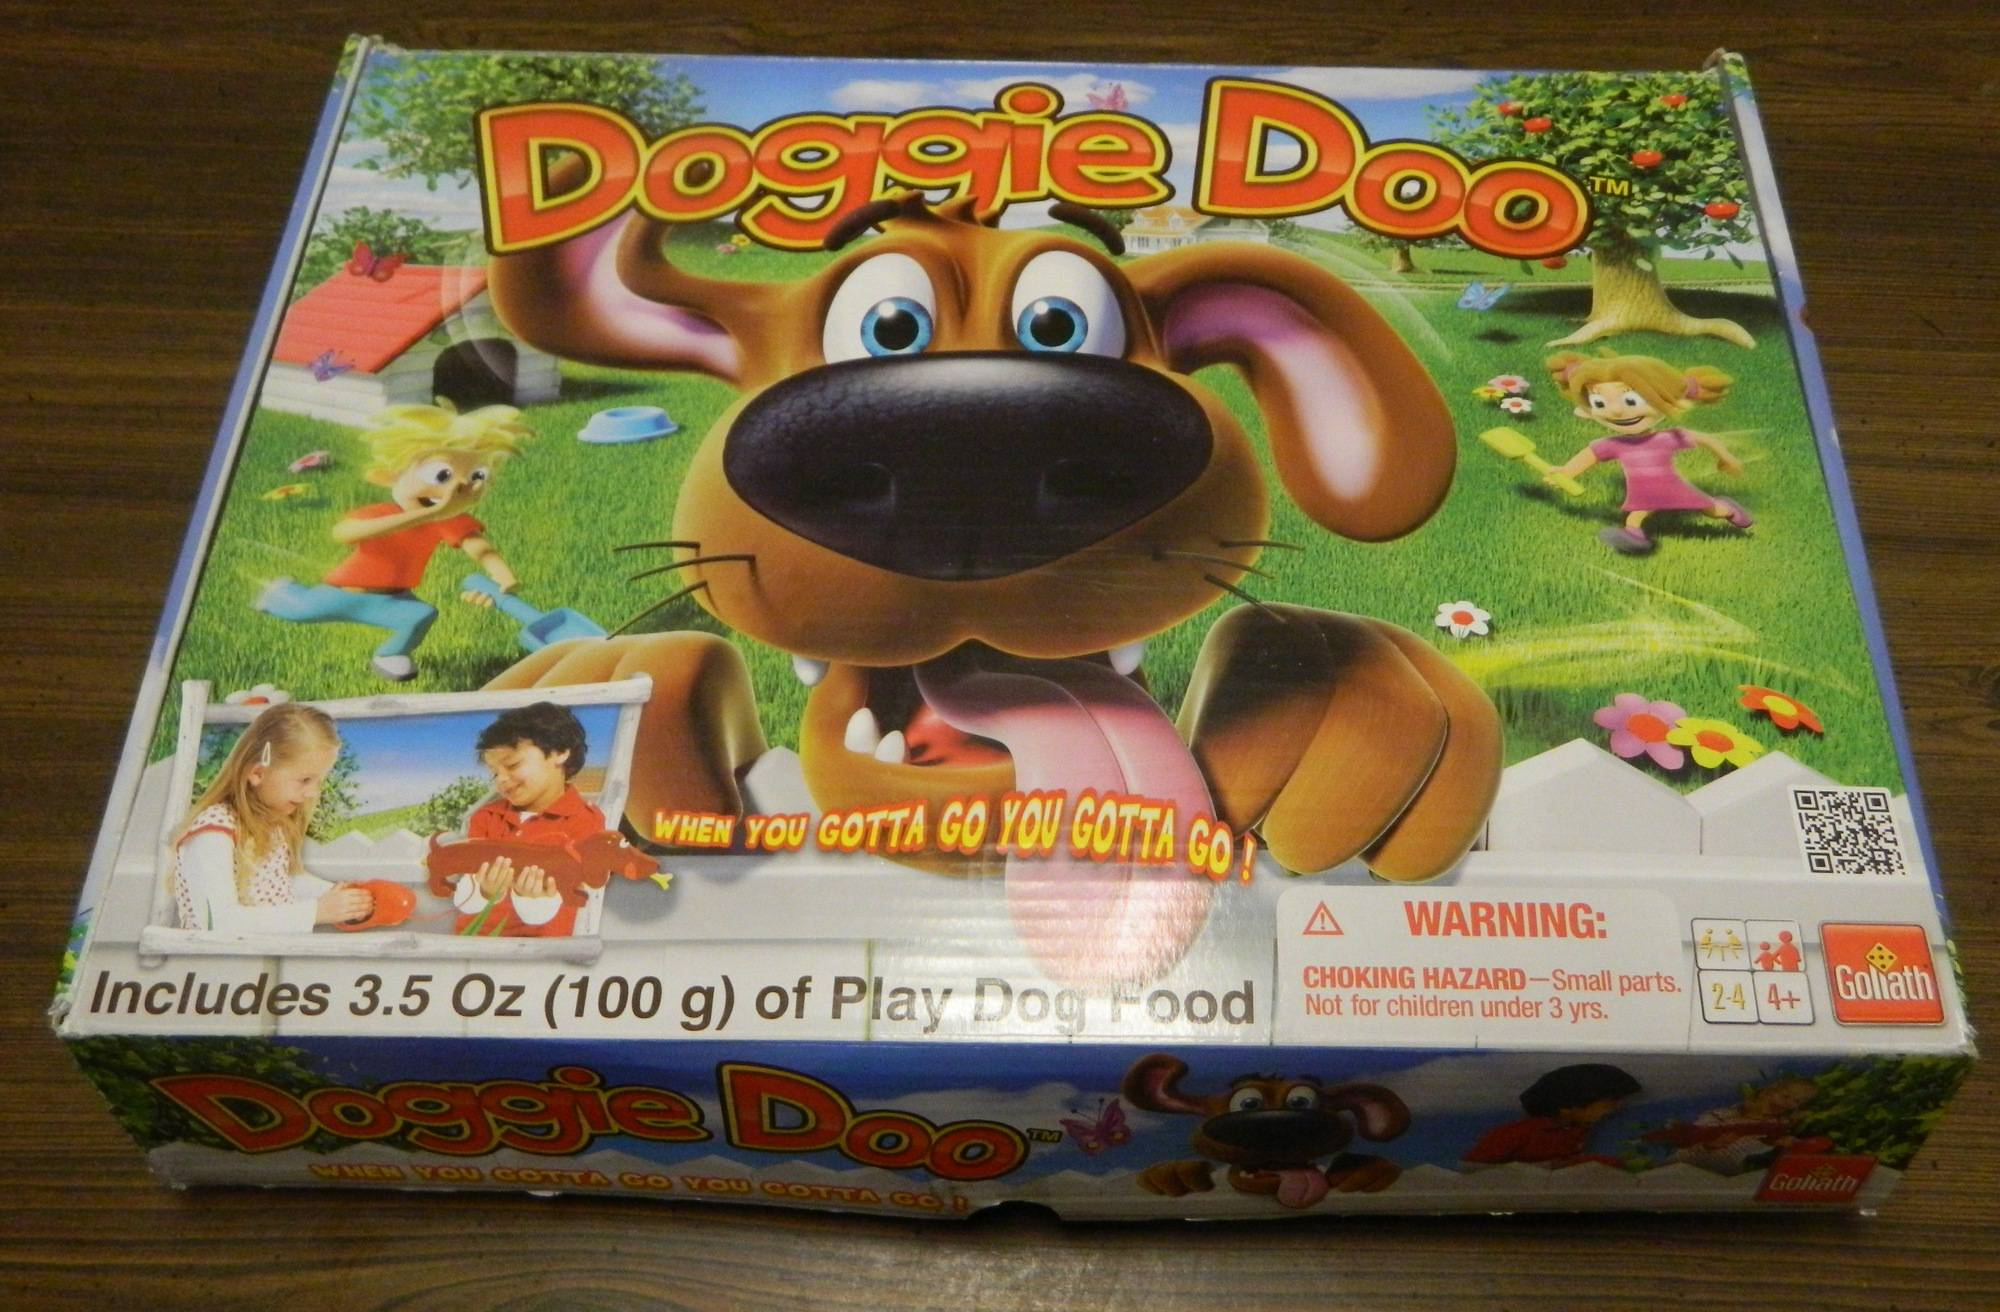 Box for Doggie Doo